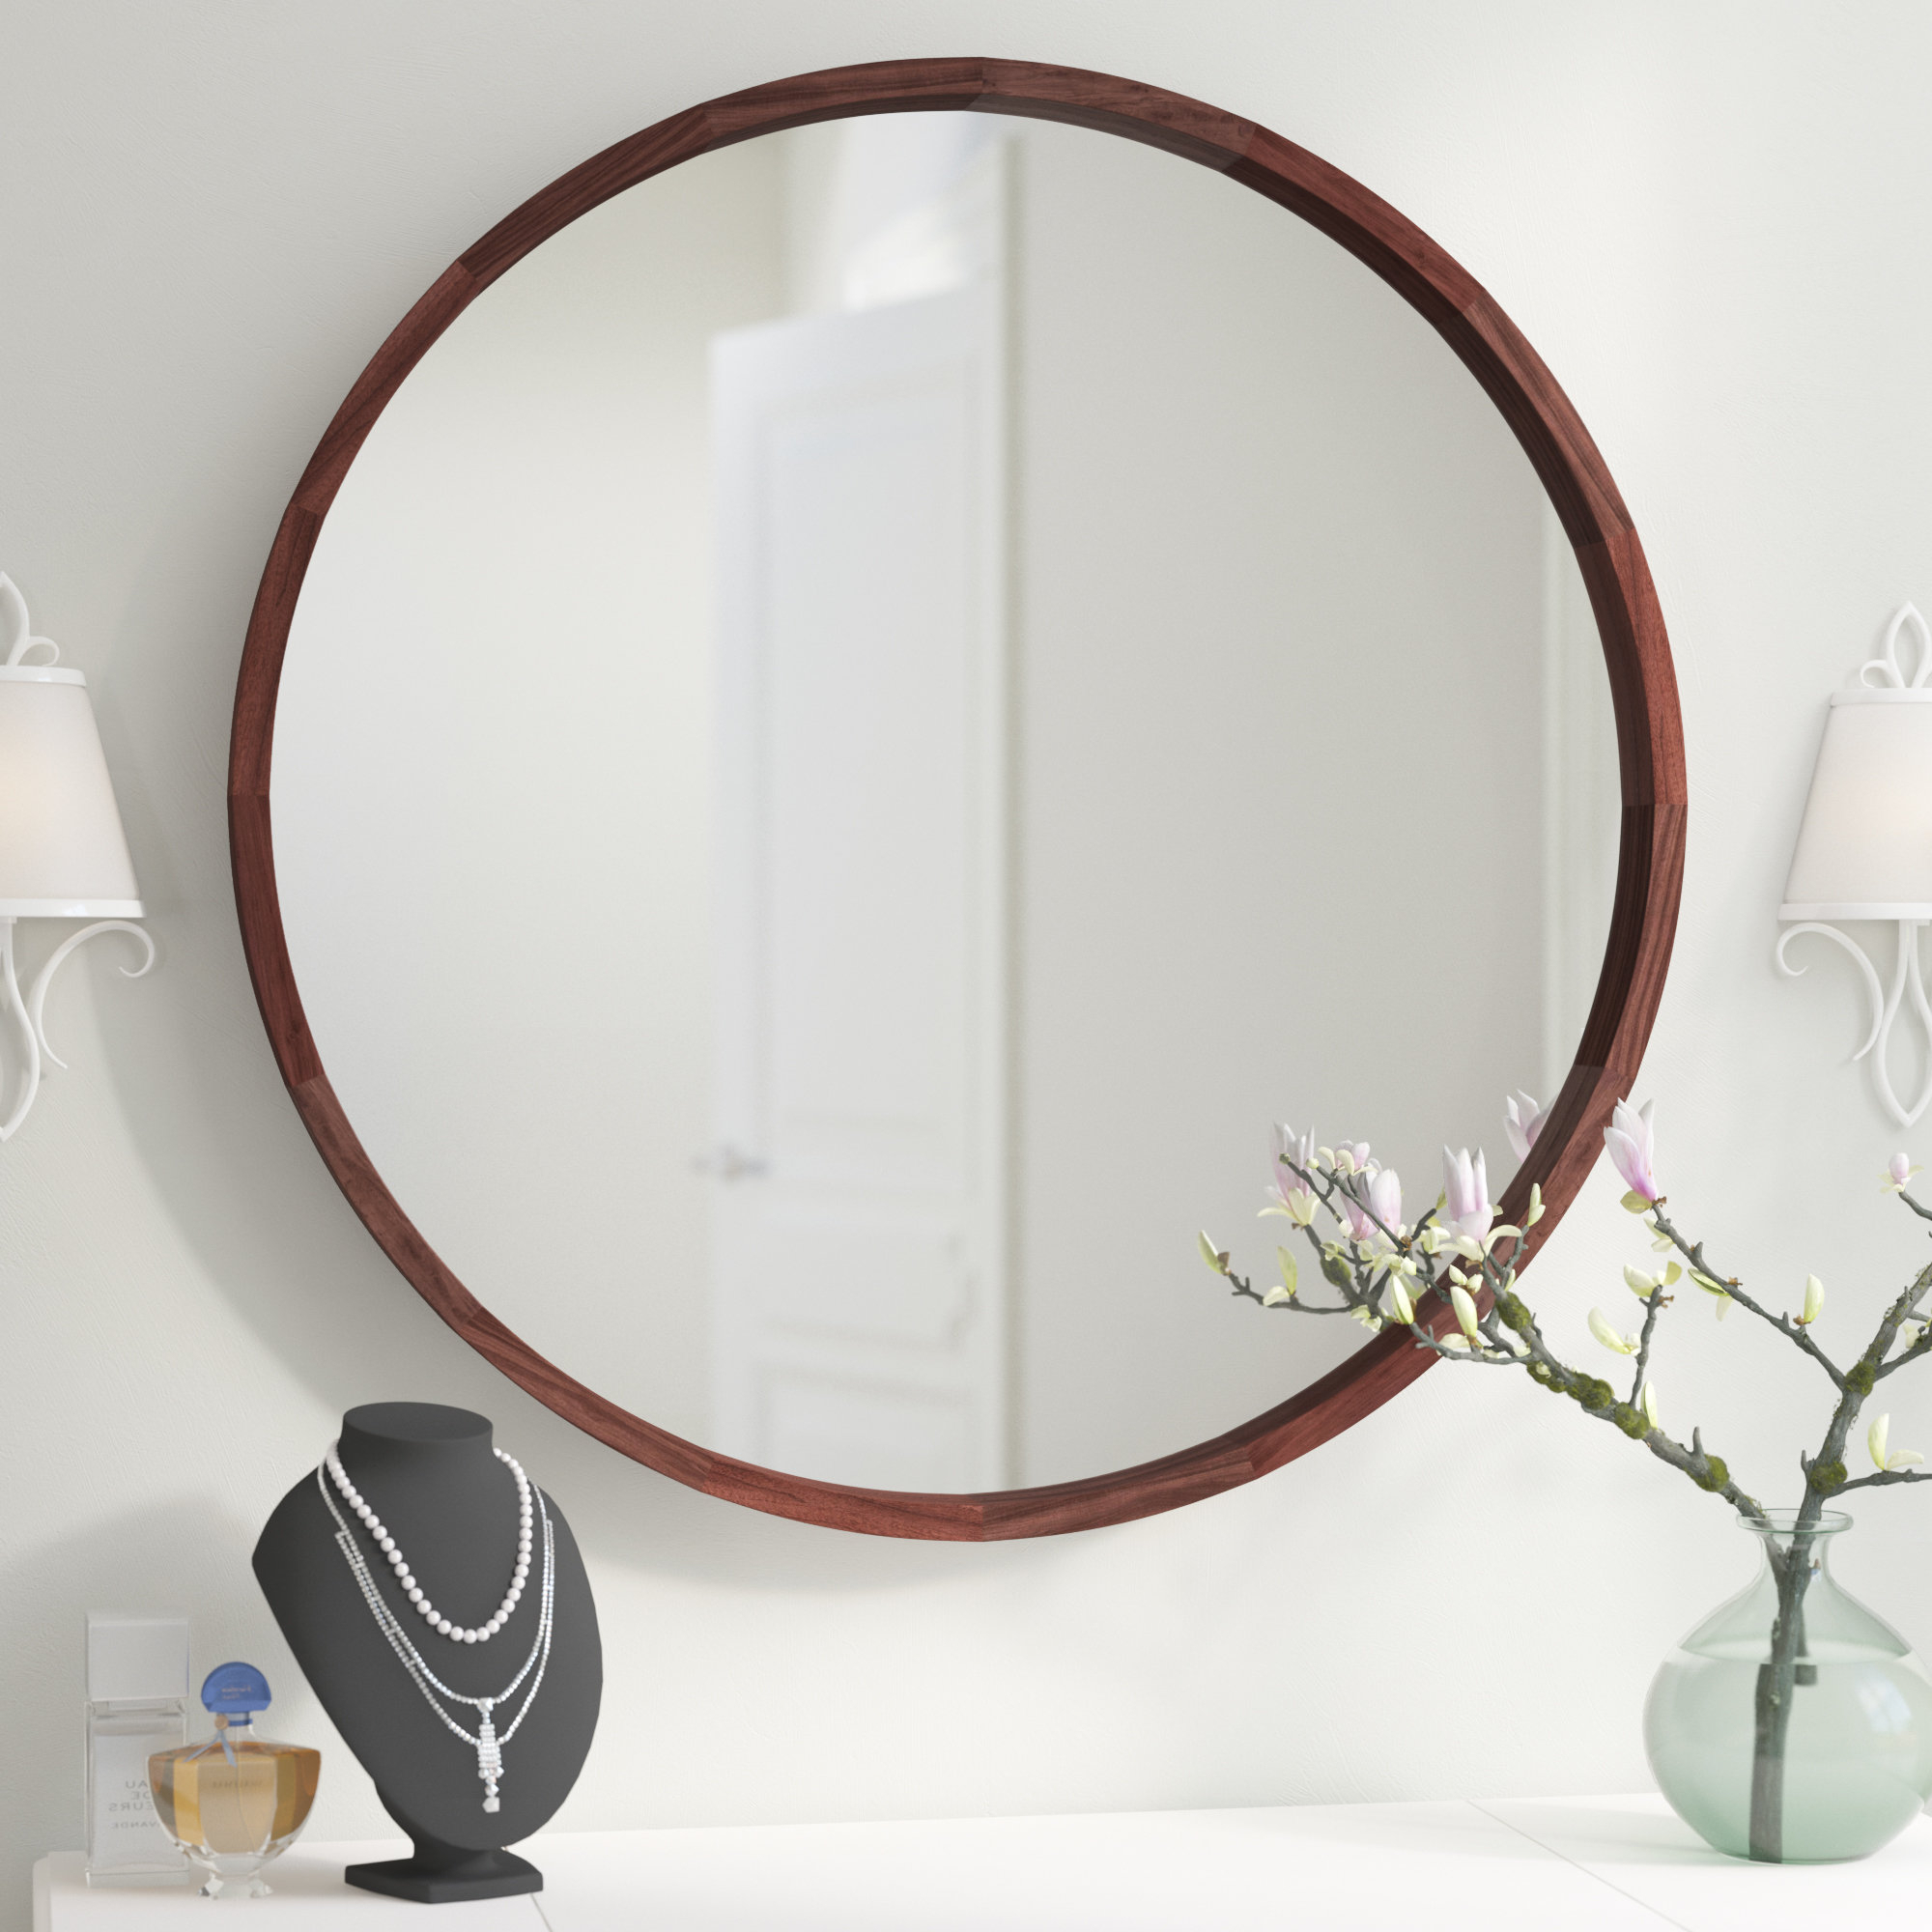 Loftis Modern & Contemporary Accent Wall Mirror Regarding 2019 Modern Round Wall Mirrors (View 9 of 20)